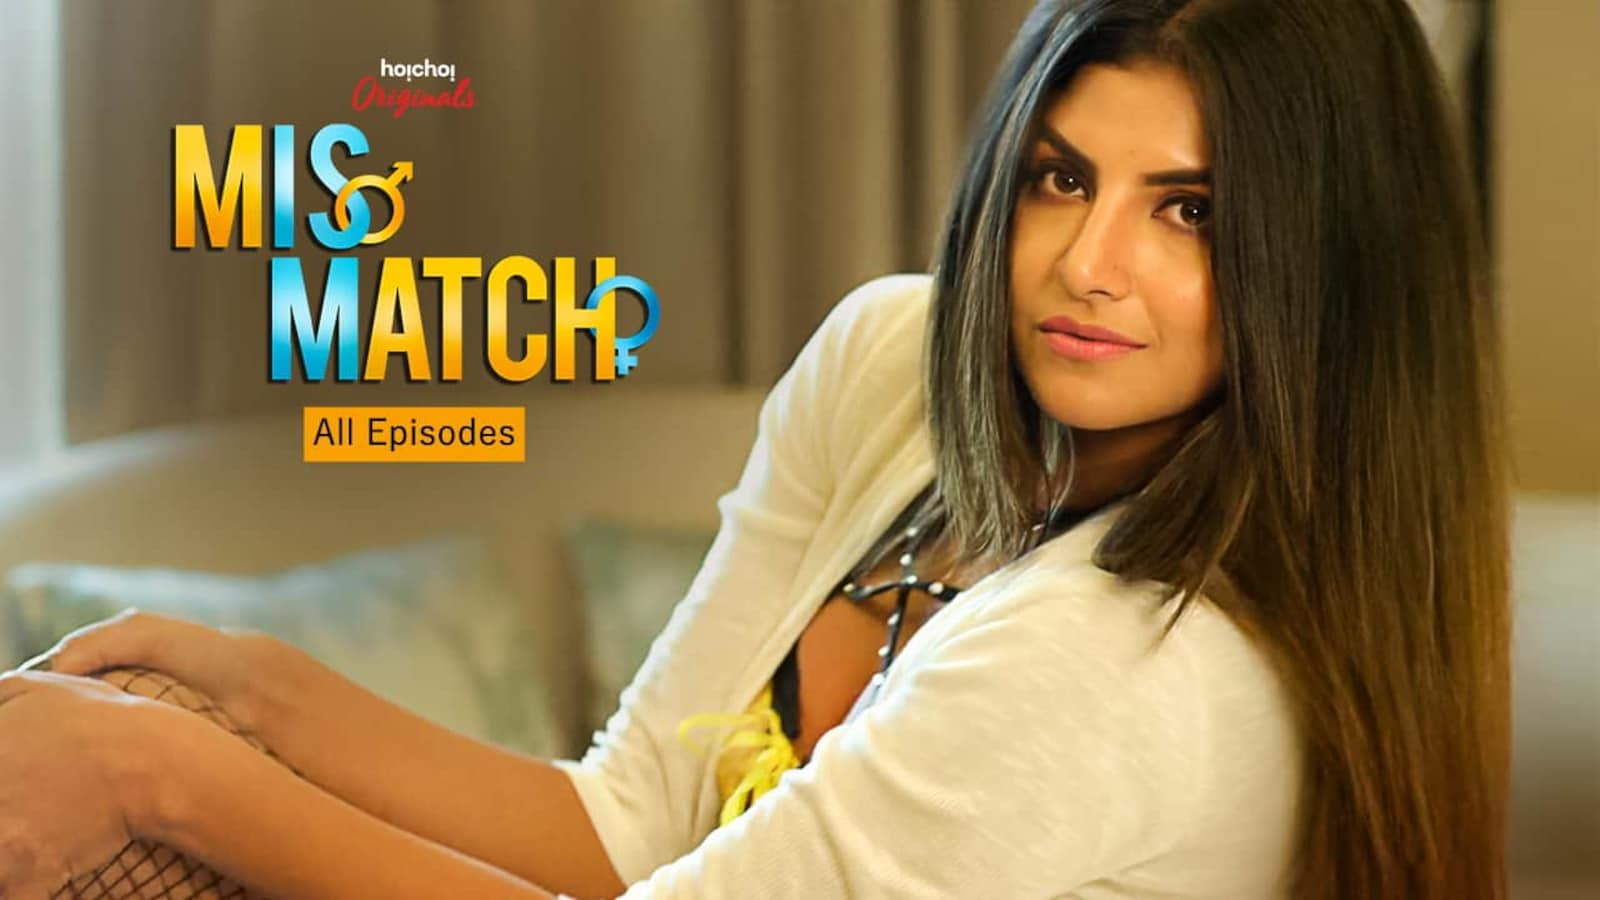 Ammco bus : Mismatch 2 bengali web series watch online free